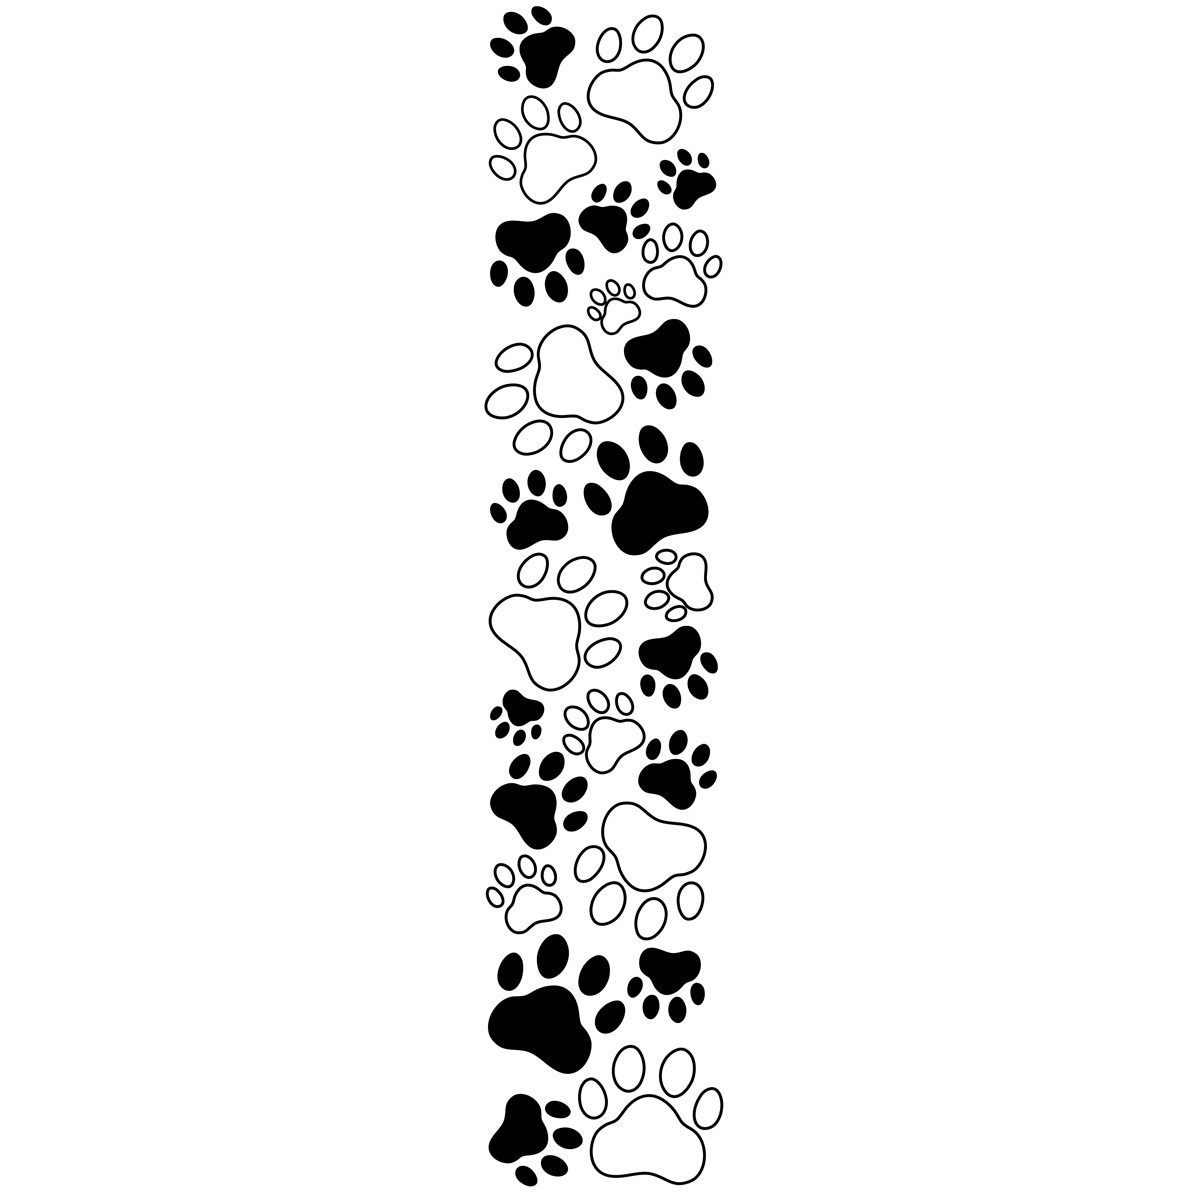 Paw print border clipart free download Paw Print Border Clip Art N10 free image free download